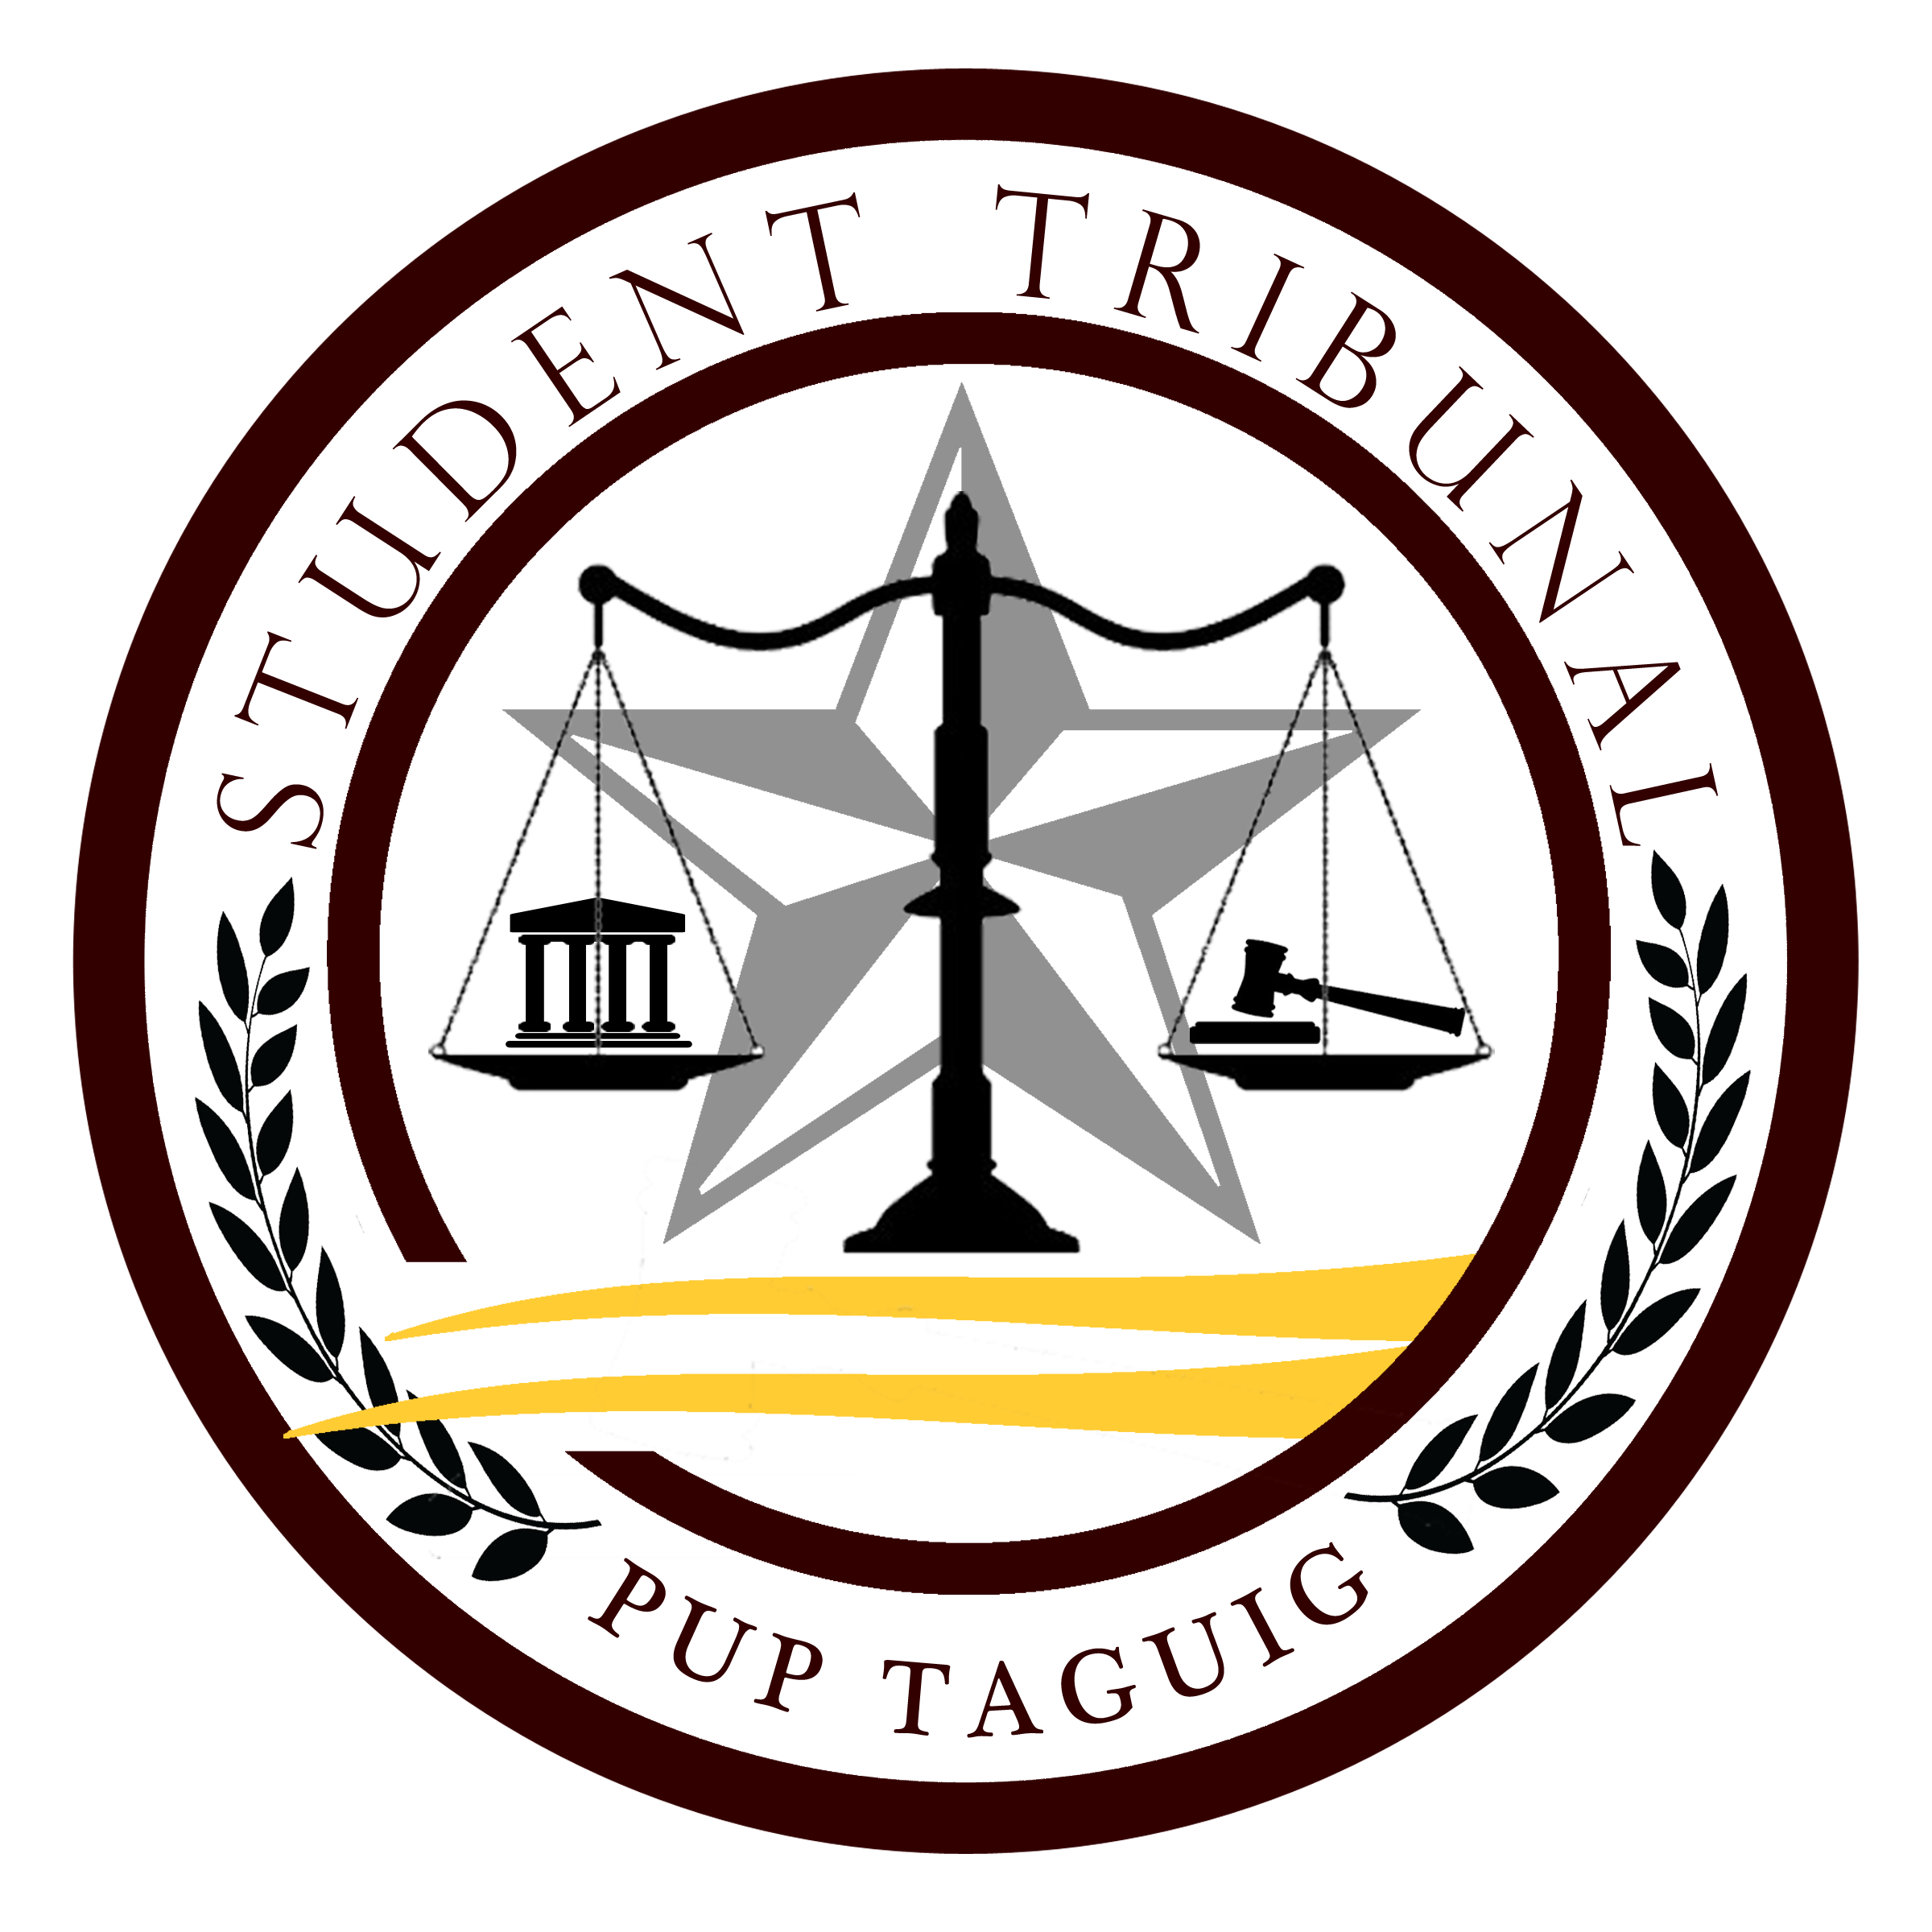 Polytechnic University of the Philippines Taguig Branch.